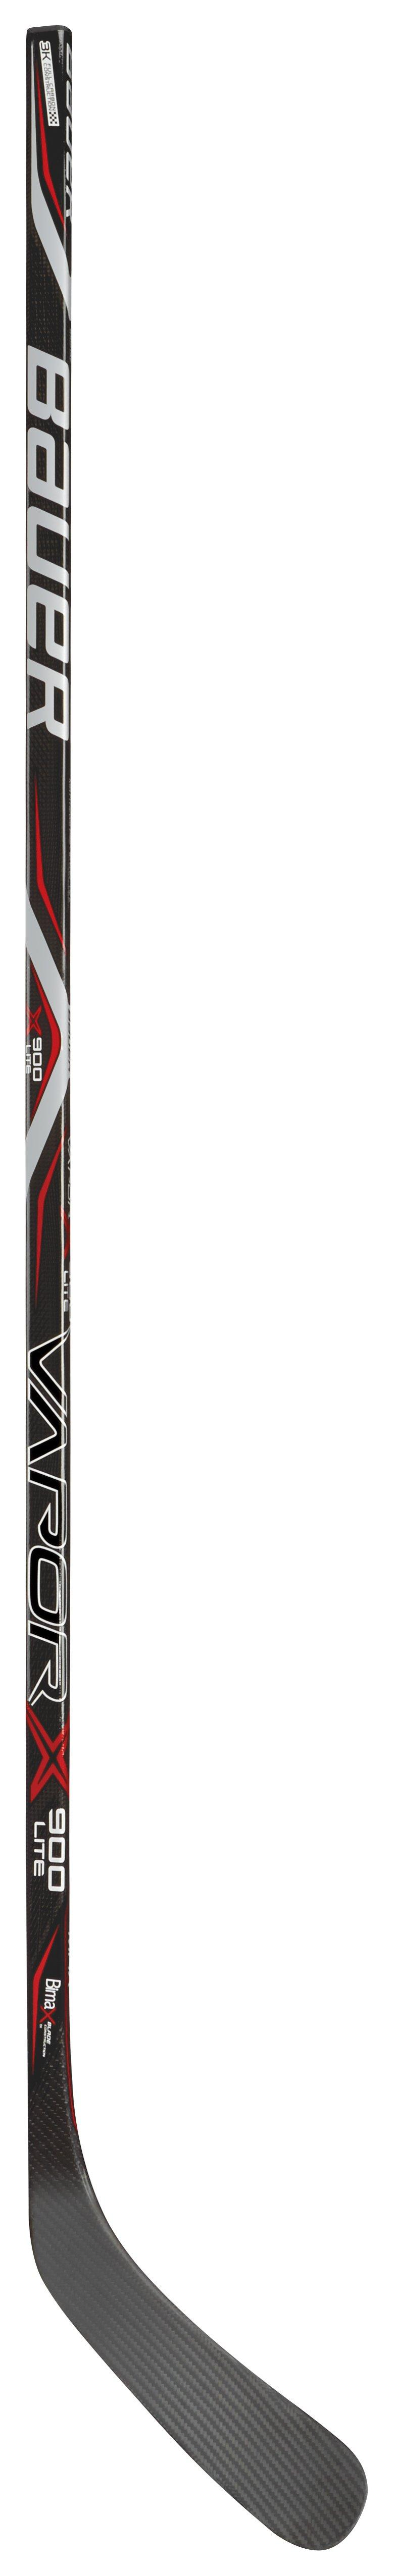 VAPOR X900 LITE GRIPTAC Stick Intermediate,,medium